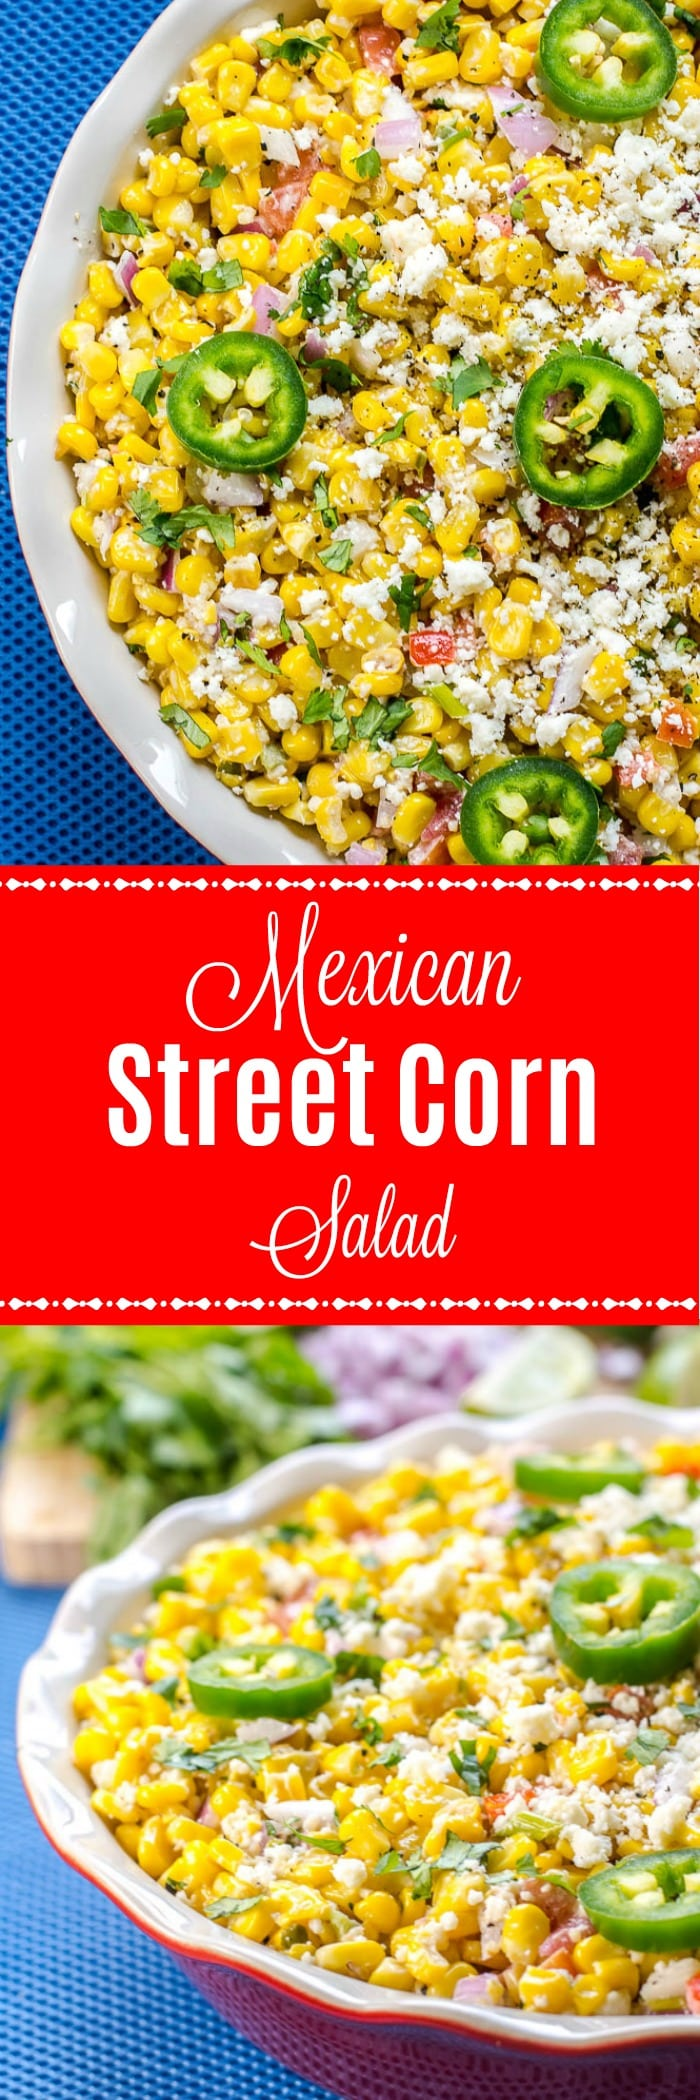 Mexican Street Corn Salad Recipe is deconstructed Elote or Mexican Street Corn, a popular Mexican street food, served in a bowl,instead of as corn on the cob, and covered with a fantastic chili lime cream sauce and cotijacheese.  #CincoDeMayo #MexicanStreetCorn #SummerSalad #MexicanStreetCornSalad